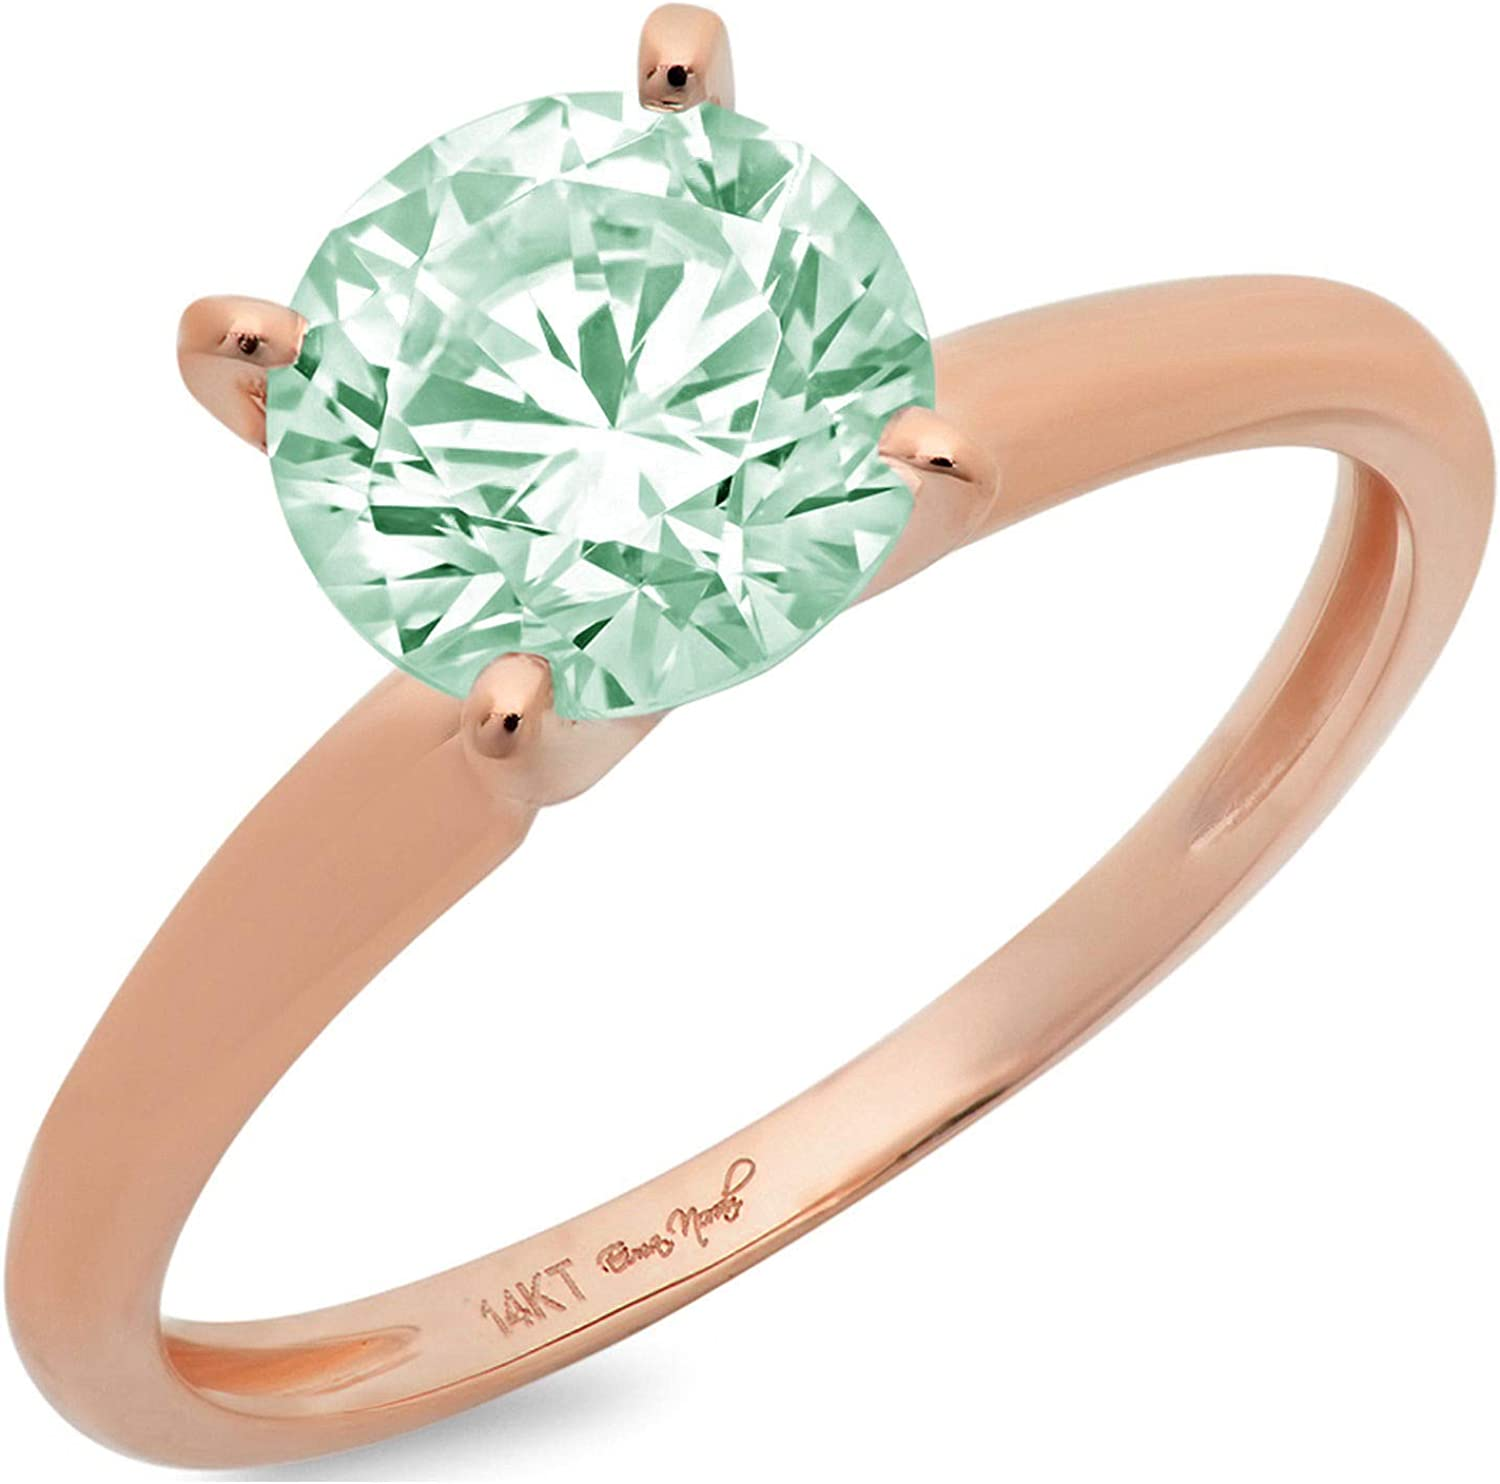 2.95 ct Brilliant Round Cut Solitaire Blue Moissanite Ideal VVS1 4-Prong Engagement Wedding Bridal Promise Anniversary Designer Ring in Solid 18K Rose Gold for Women